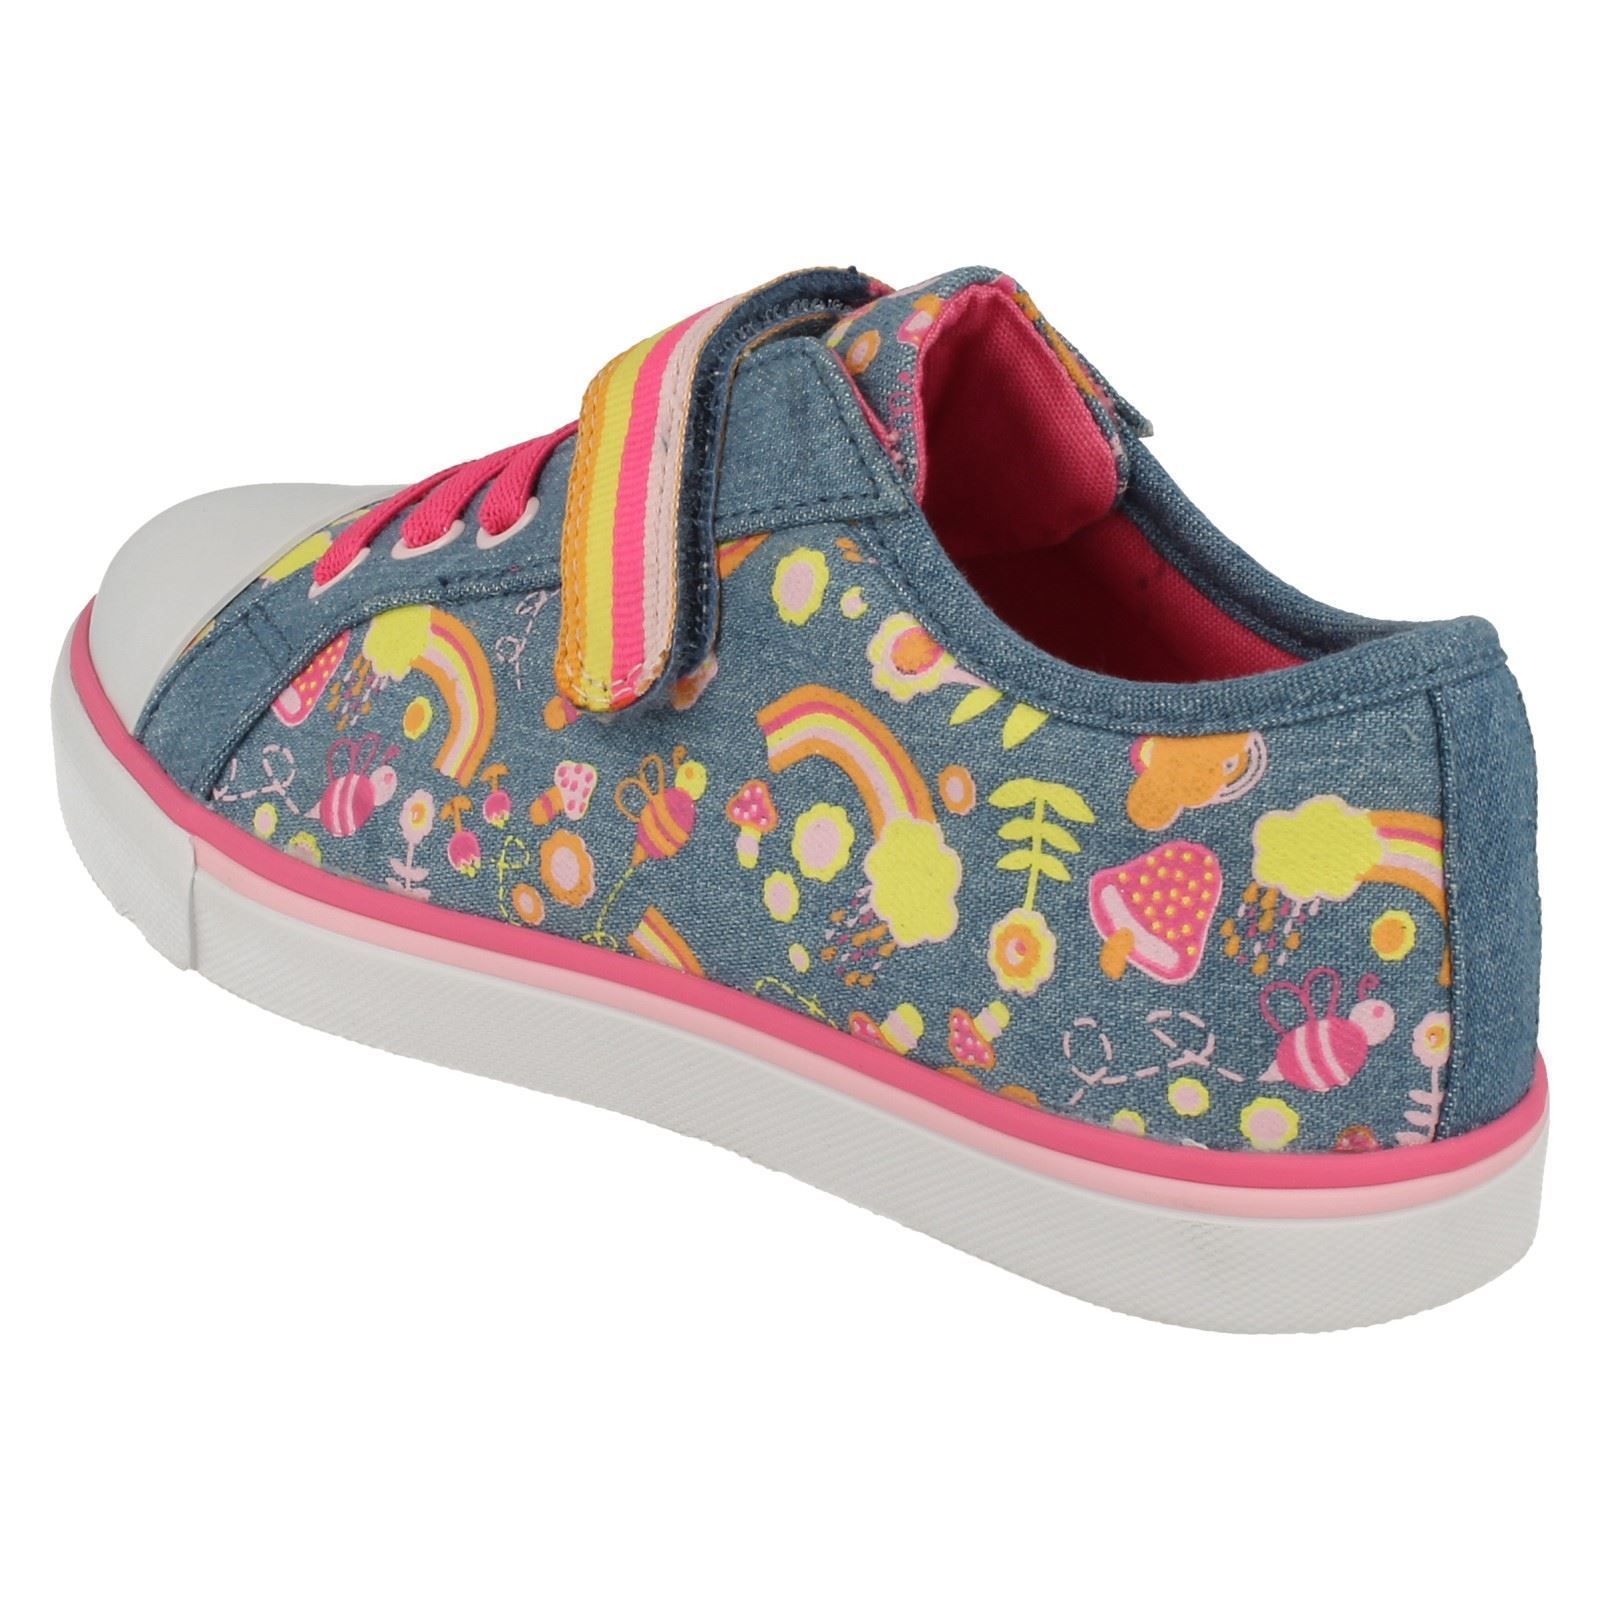 Girls Clarks Canvas Shoes Style - Brill Doll